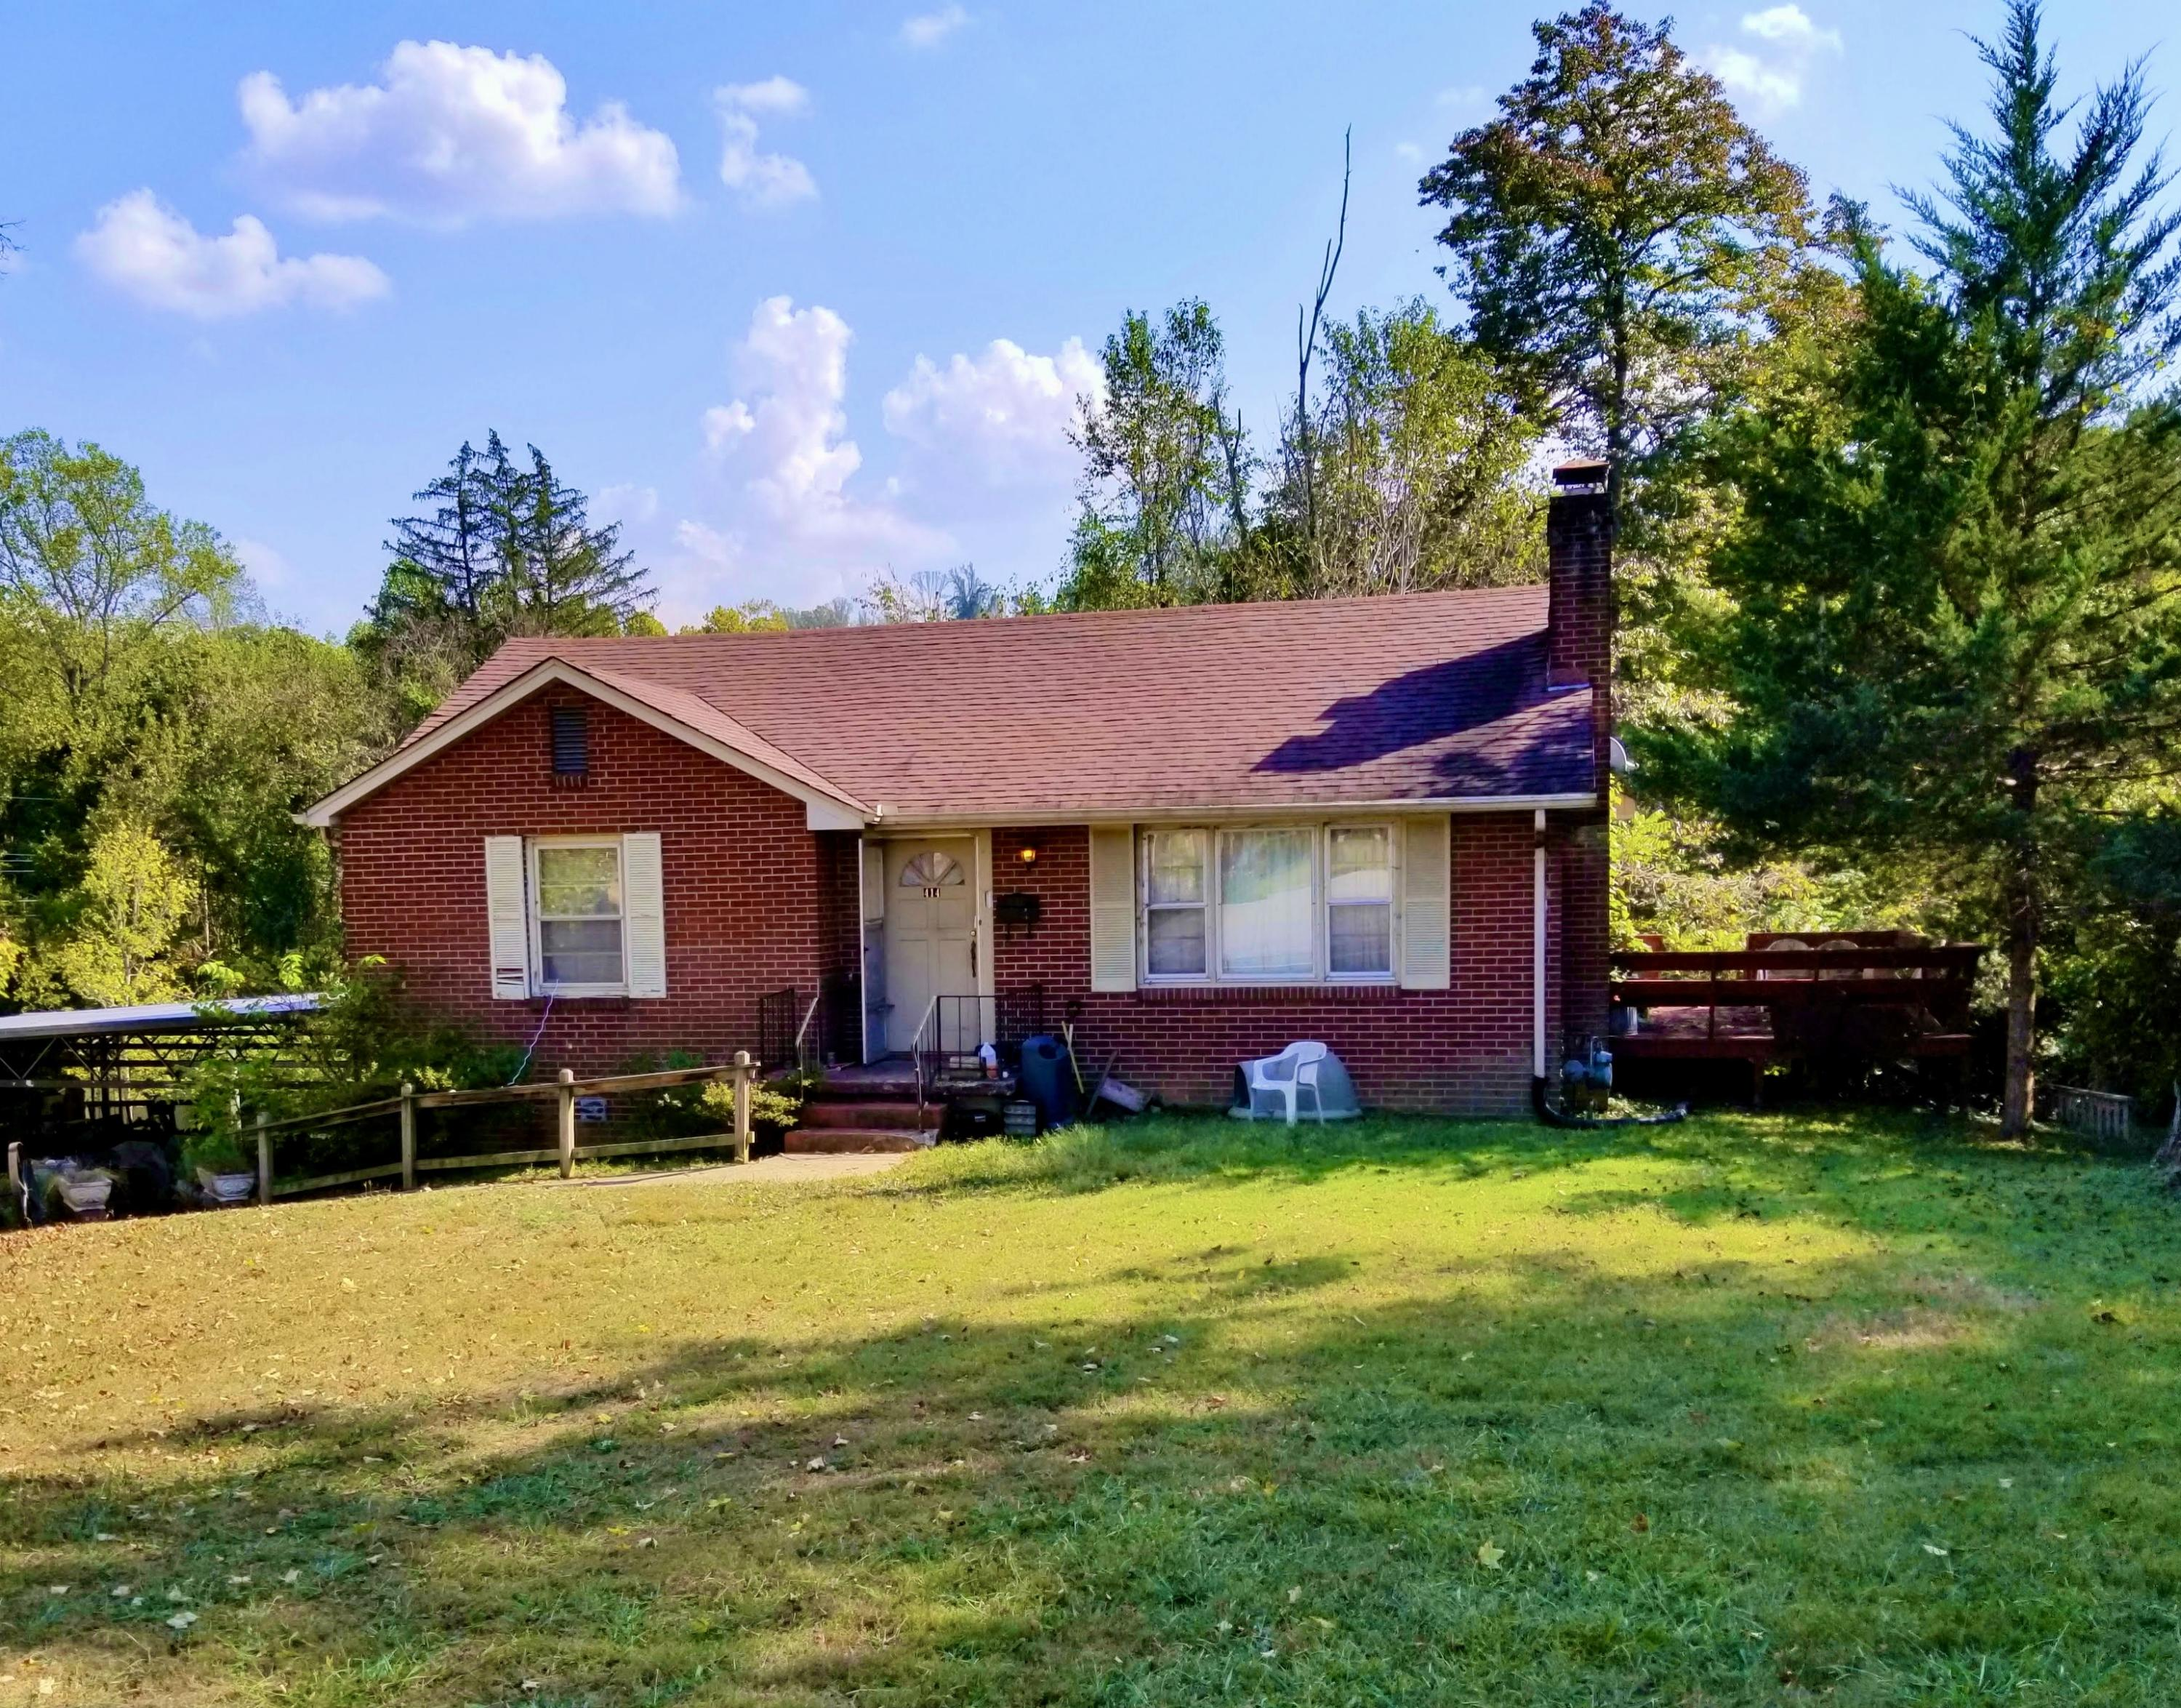 414 Ford Valley Rd, Knoxville, Tennessee 37920, 2 Bedrooms Bedrooms, ,1 BathroomBathrooms,Single Family,For Sale,Ford Valley,1099496